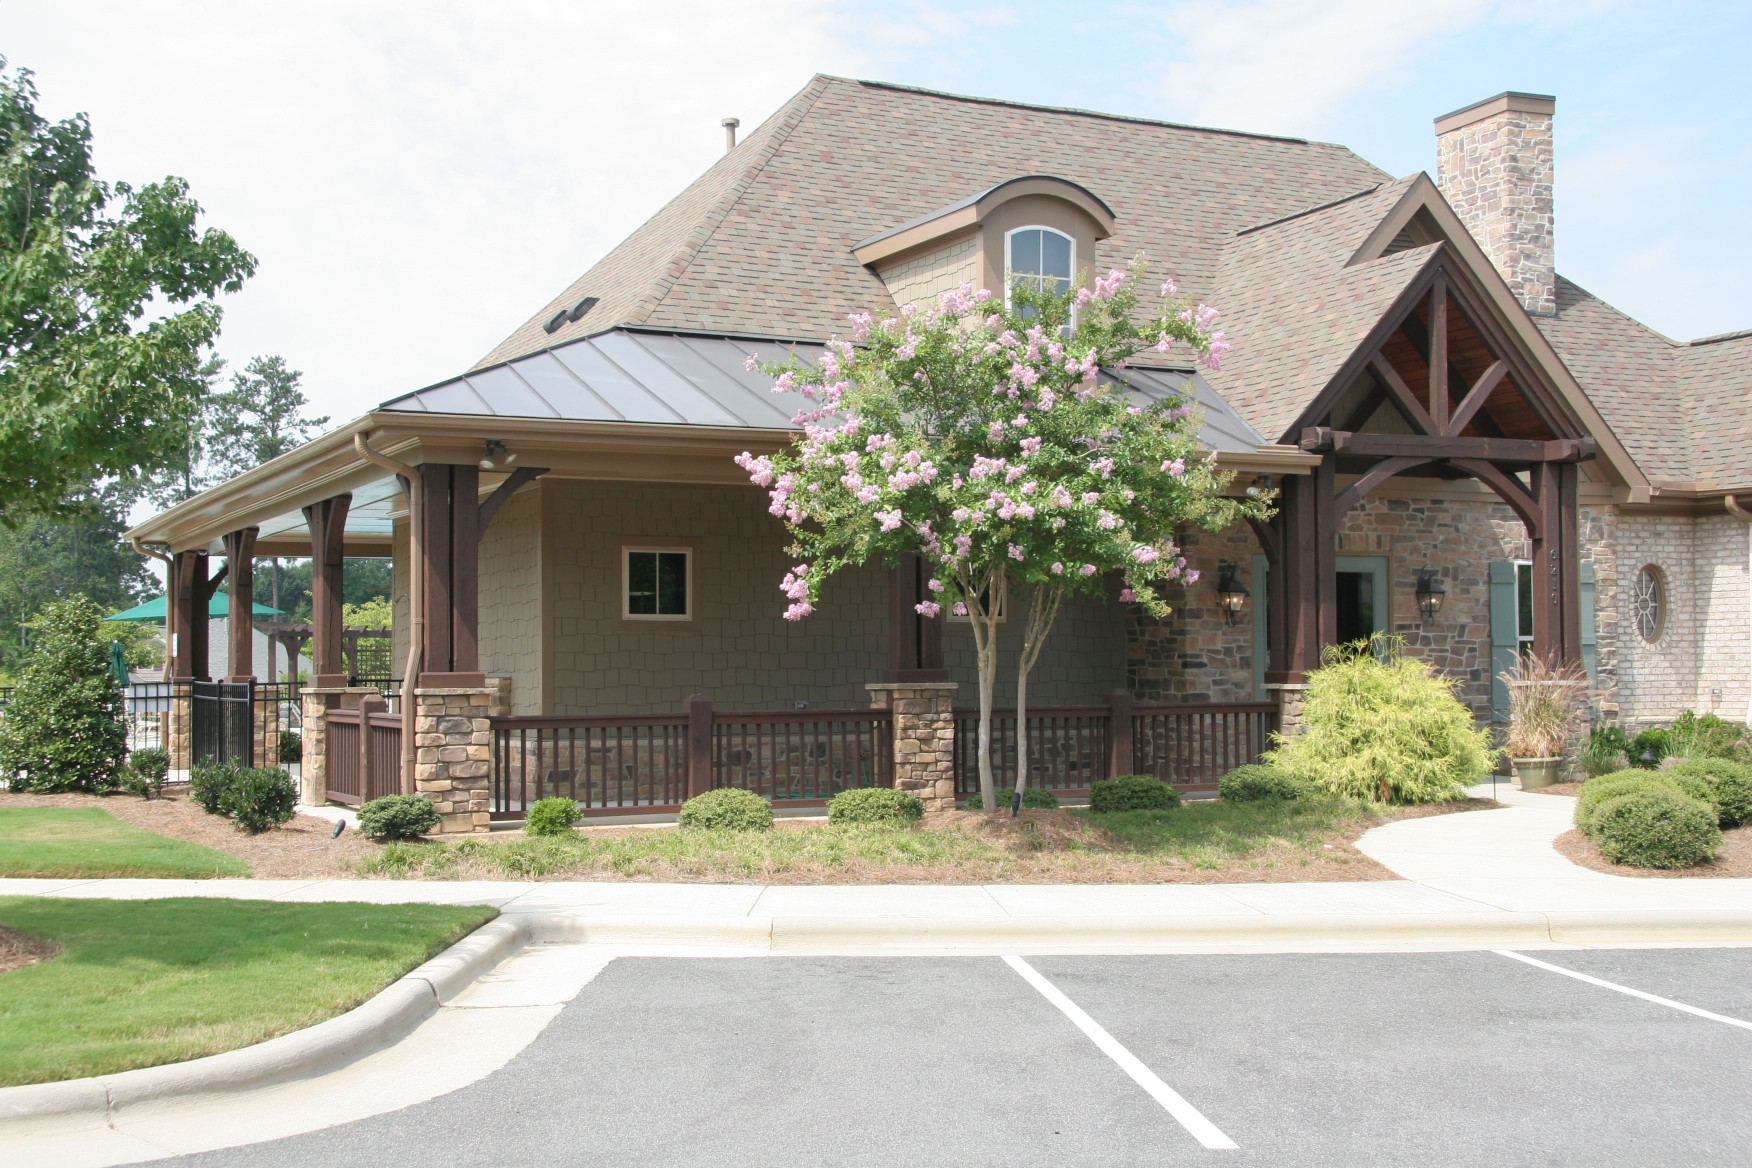 The wood braces, wood posts, wood gable, and wood railing add to the elegance of this clubhouse.